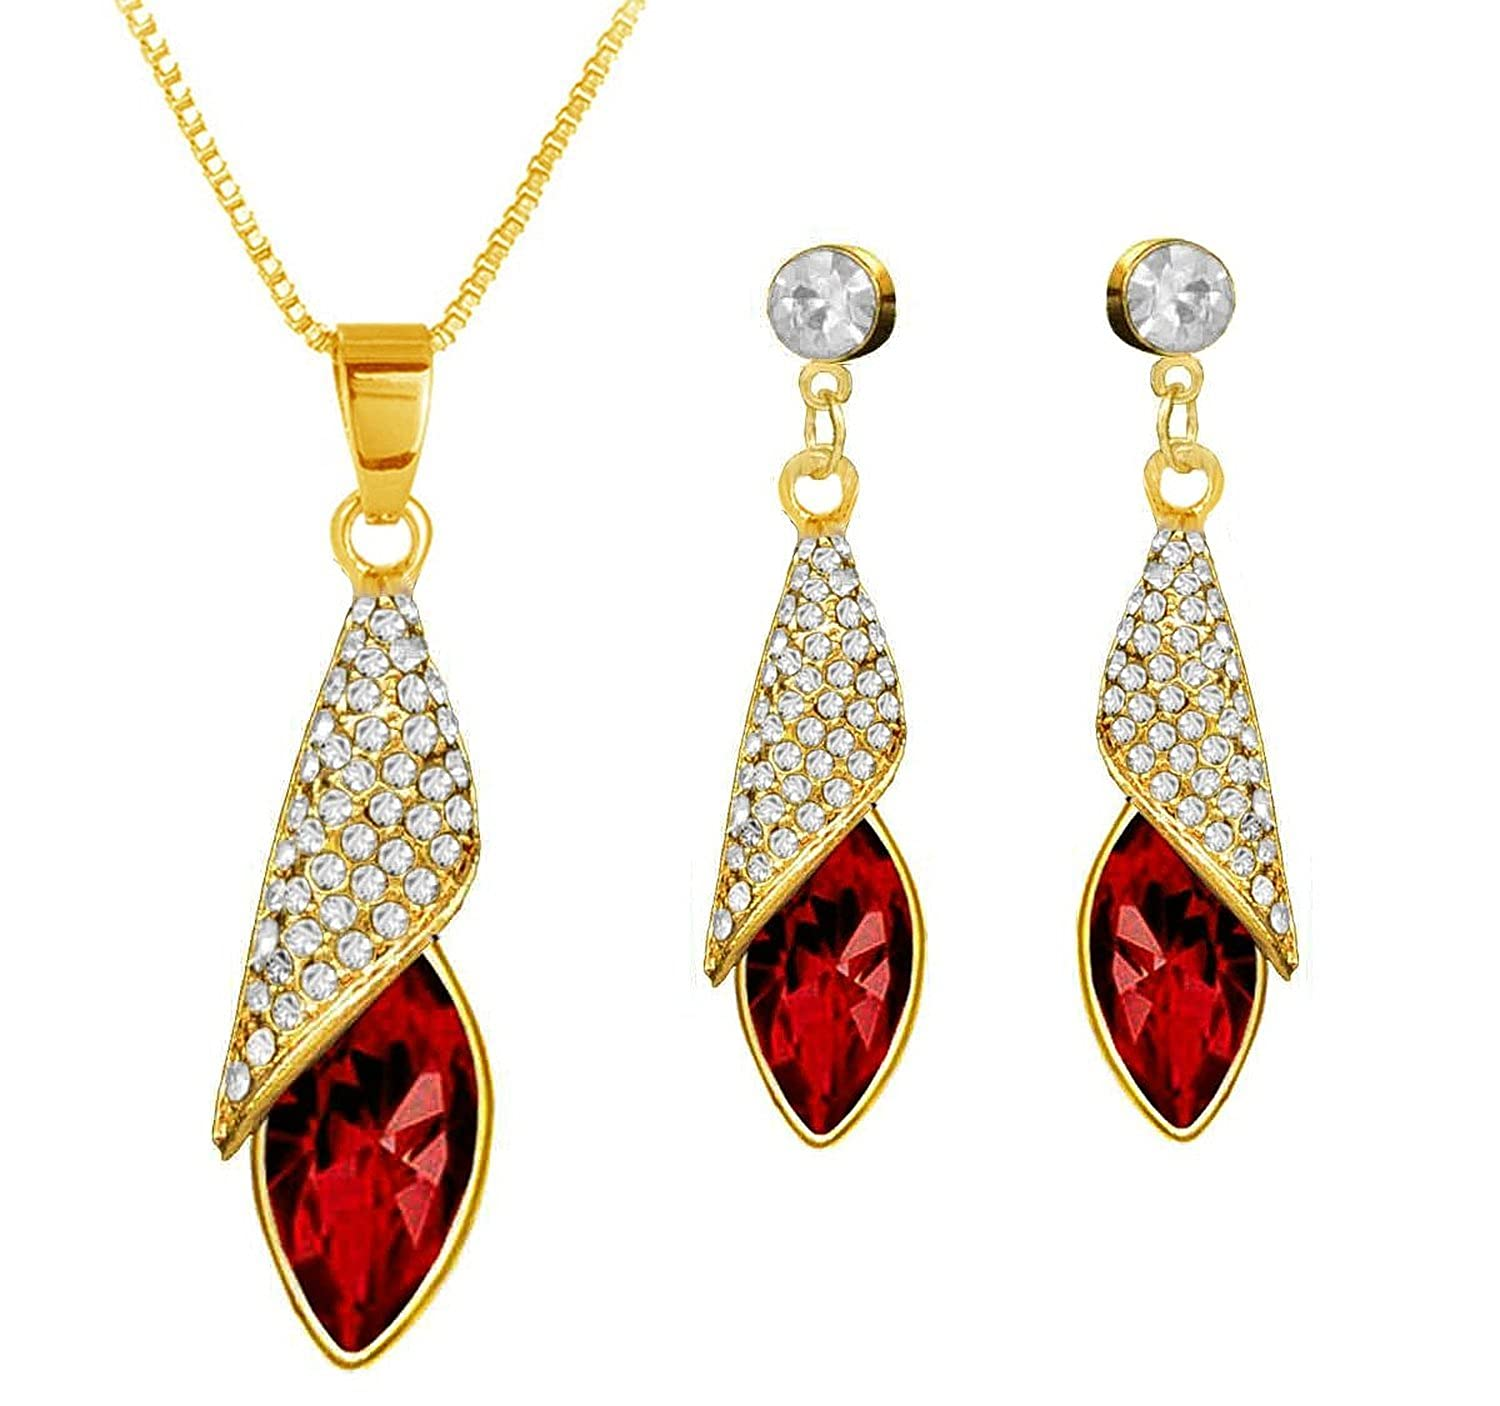 Buy gold plated red designer swarovski pendant earring set for buy gold plated red designer swarovski pendant earring set for women by eterno fashions online at low prices in india amazon jewellery store amazon mozeypictures Choice Image